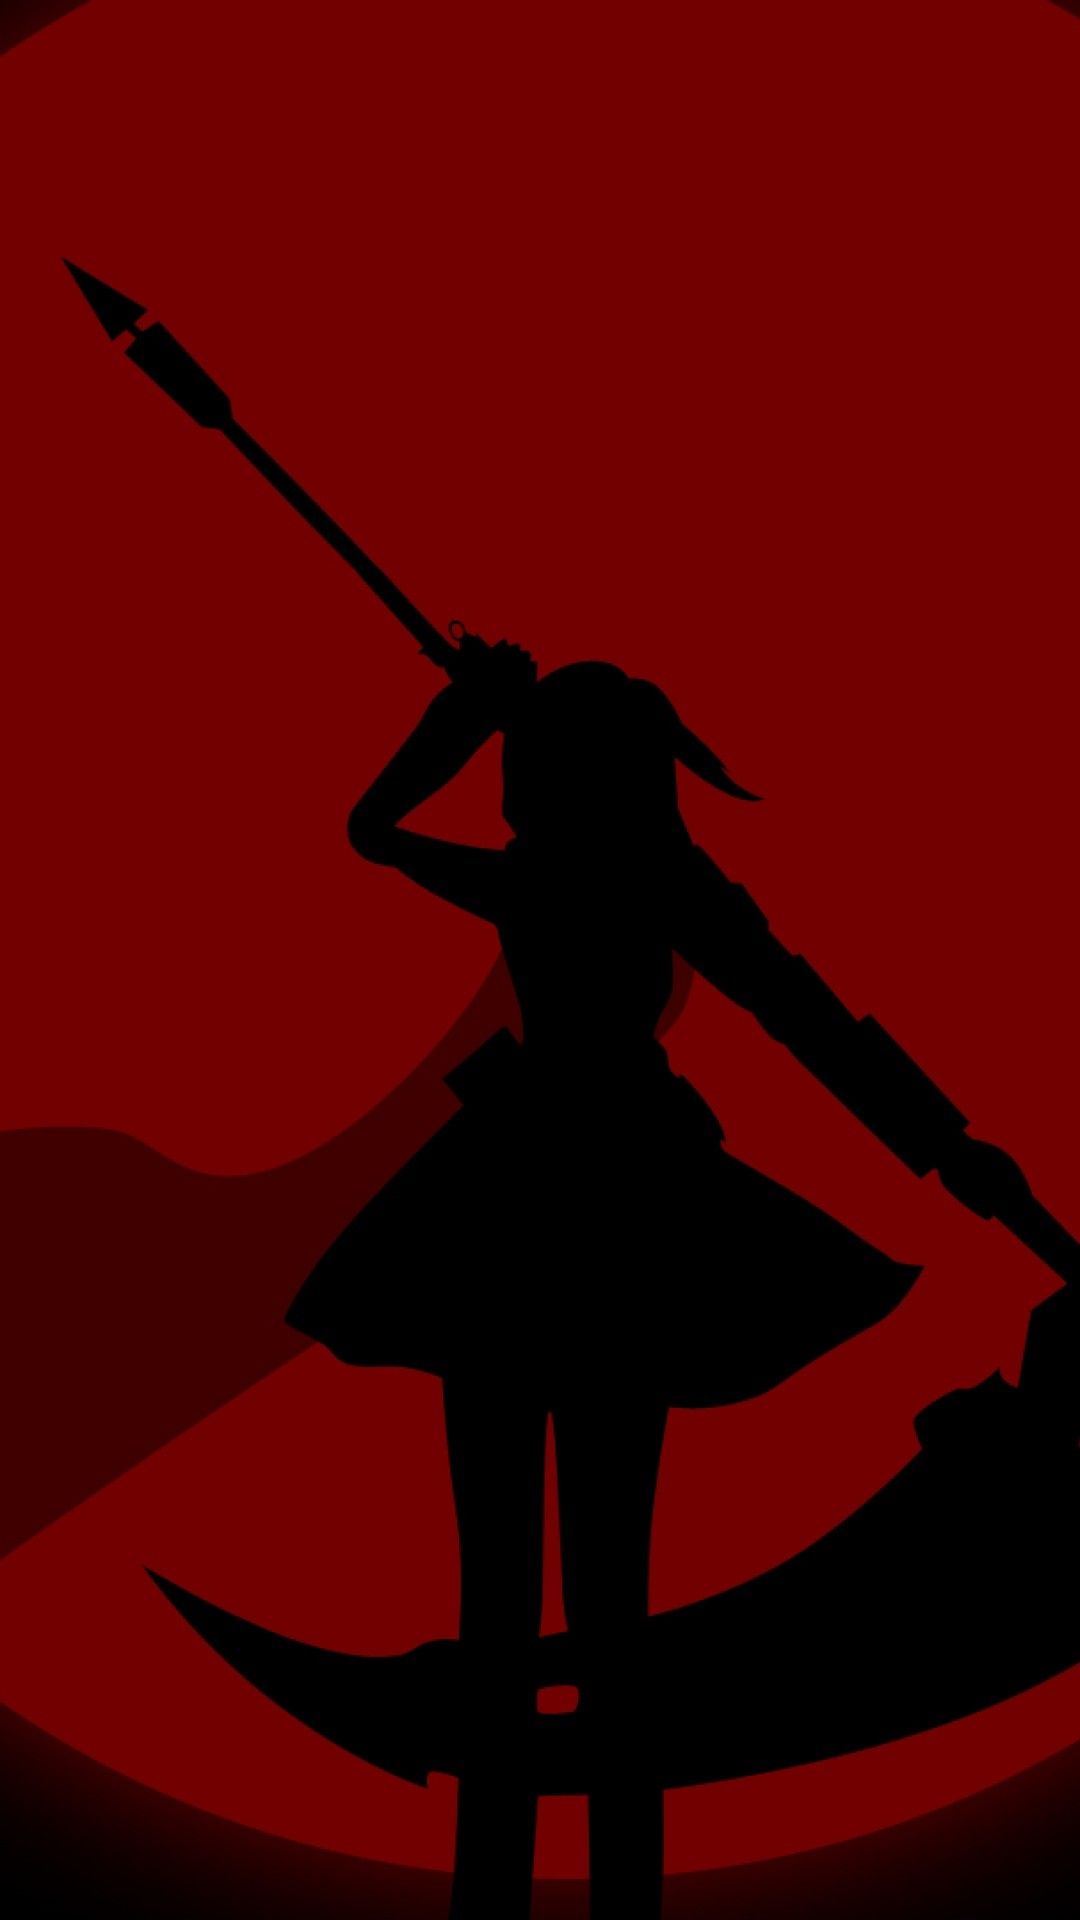 Res: 1080x1920, Rwby mobile wallpapers Filename: MATYLs.png RWBY Phone, ID: XF641, ...